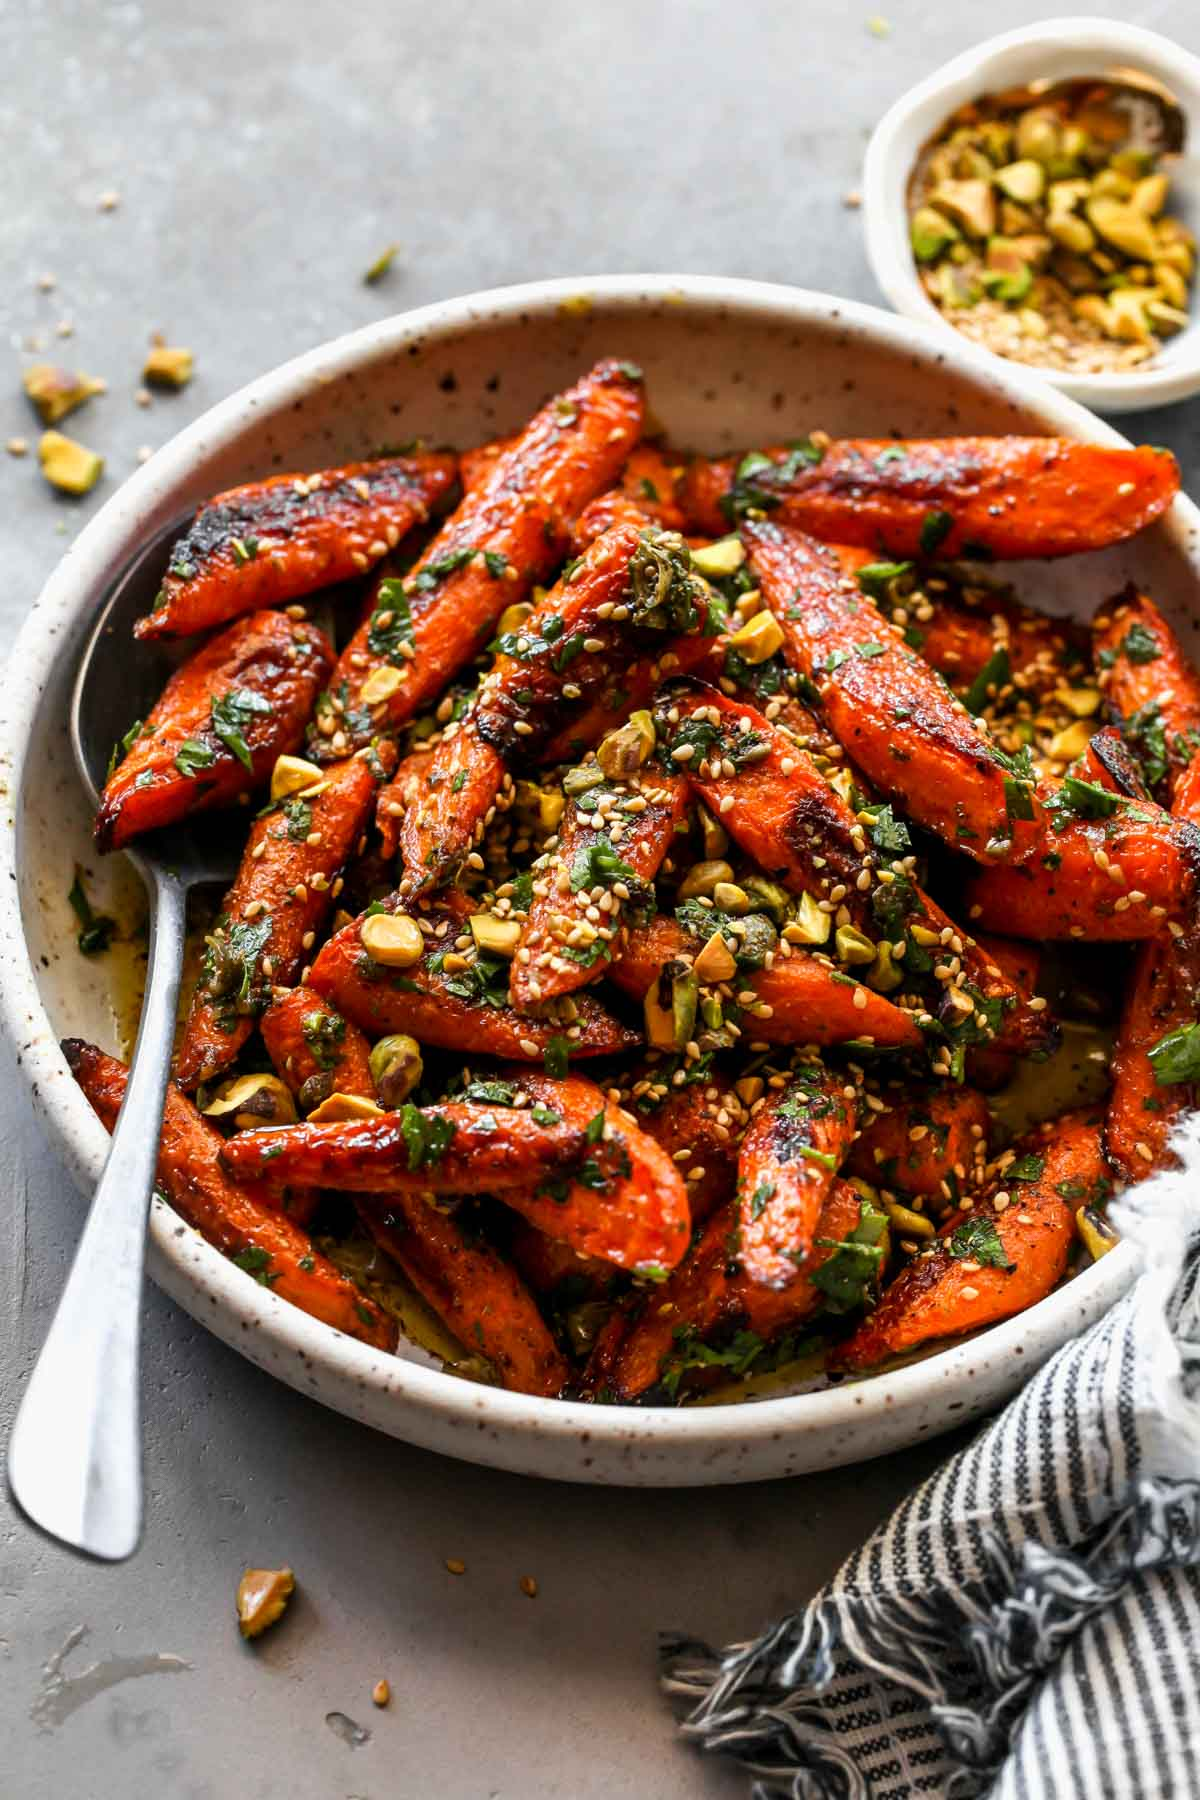 Spice roasted carrots topped with nuts and seeds in a white bowl